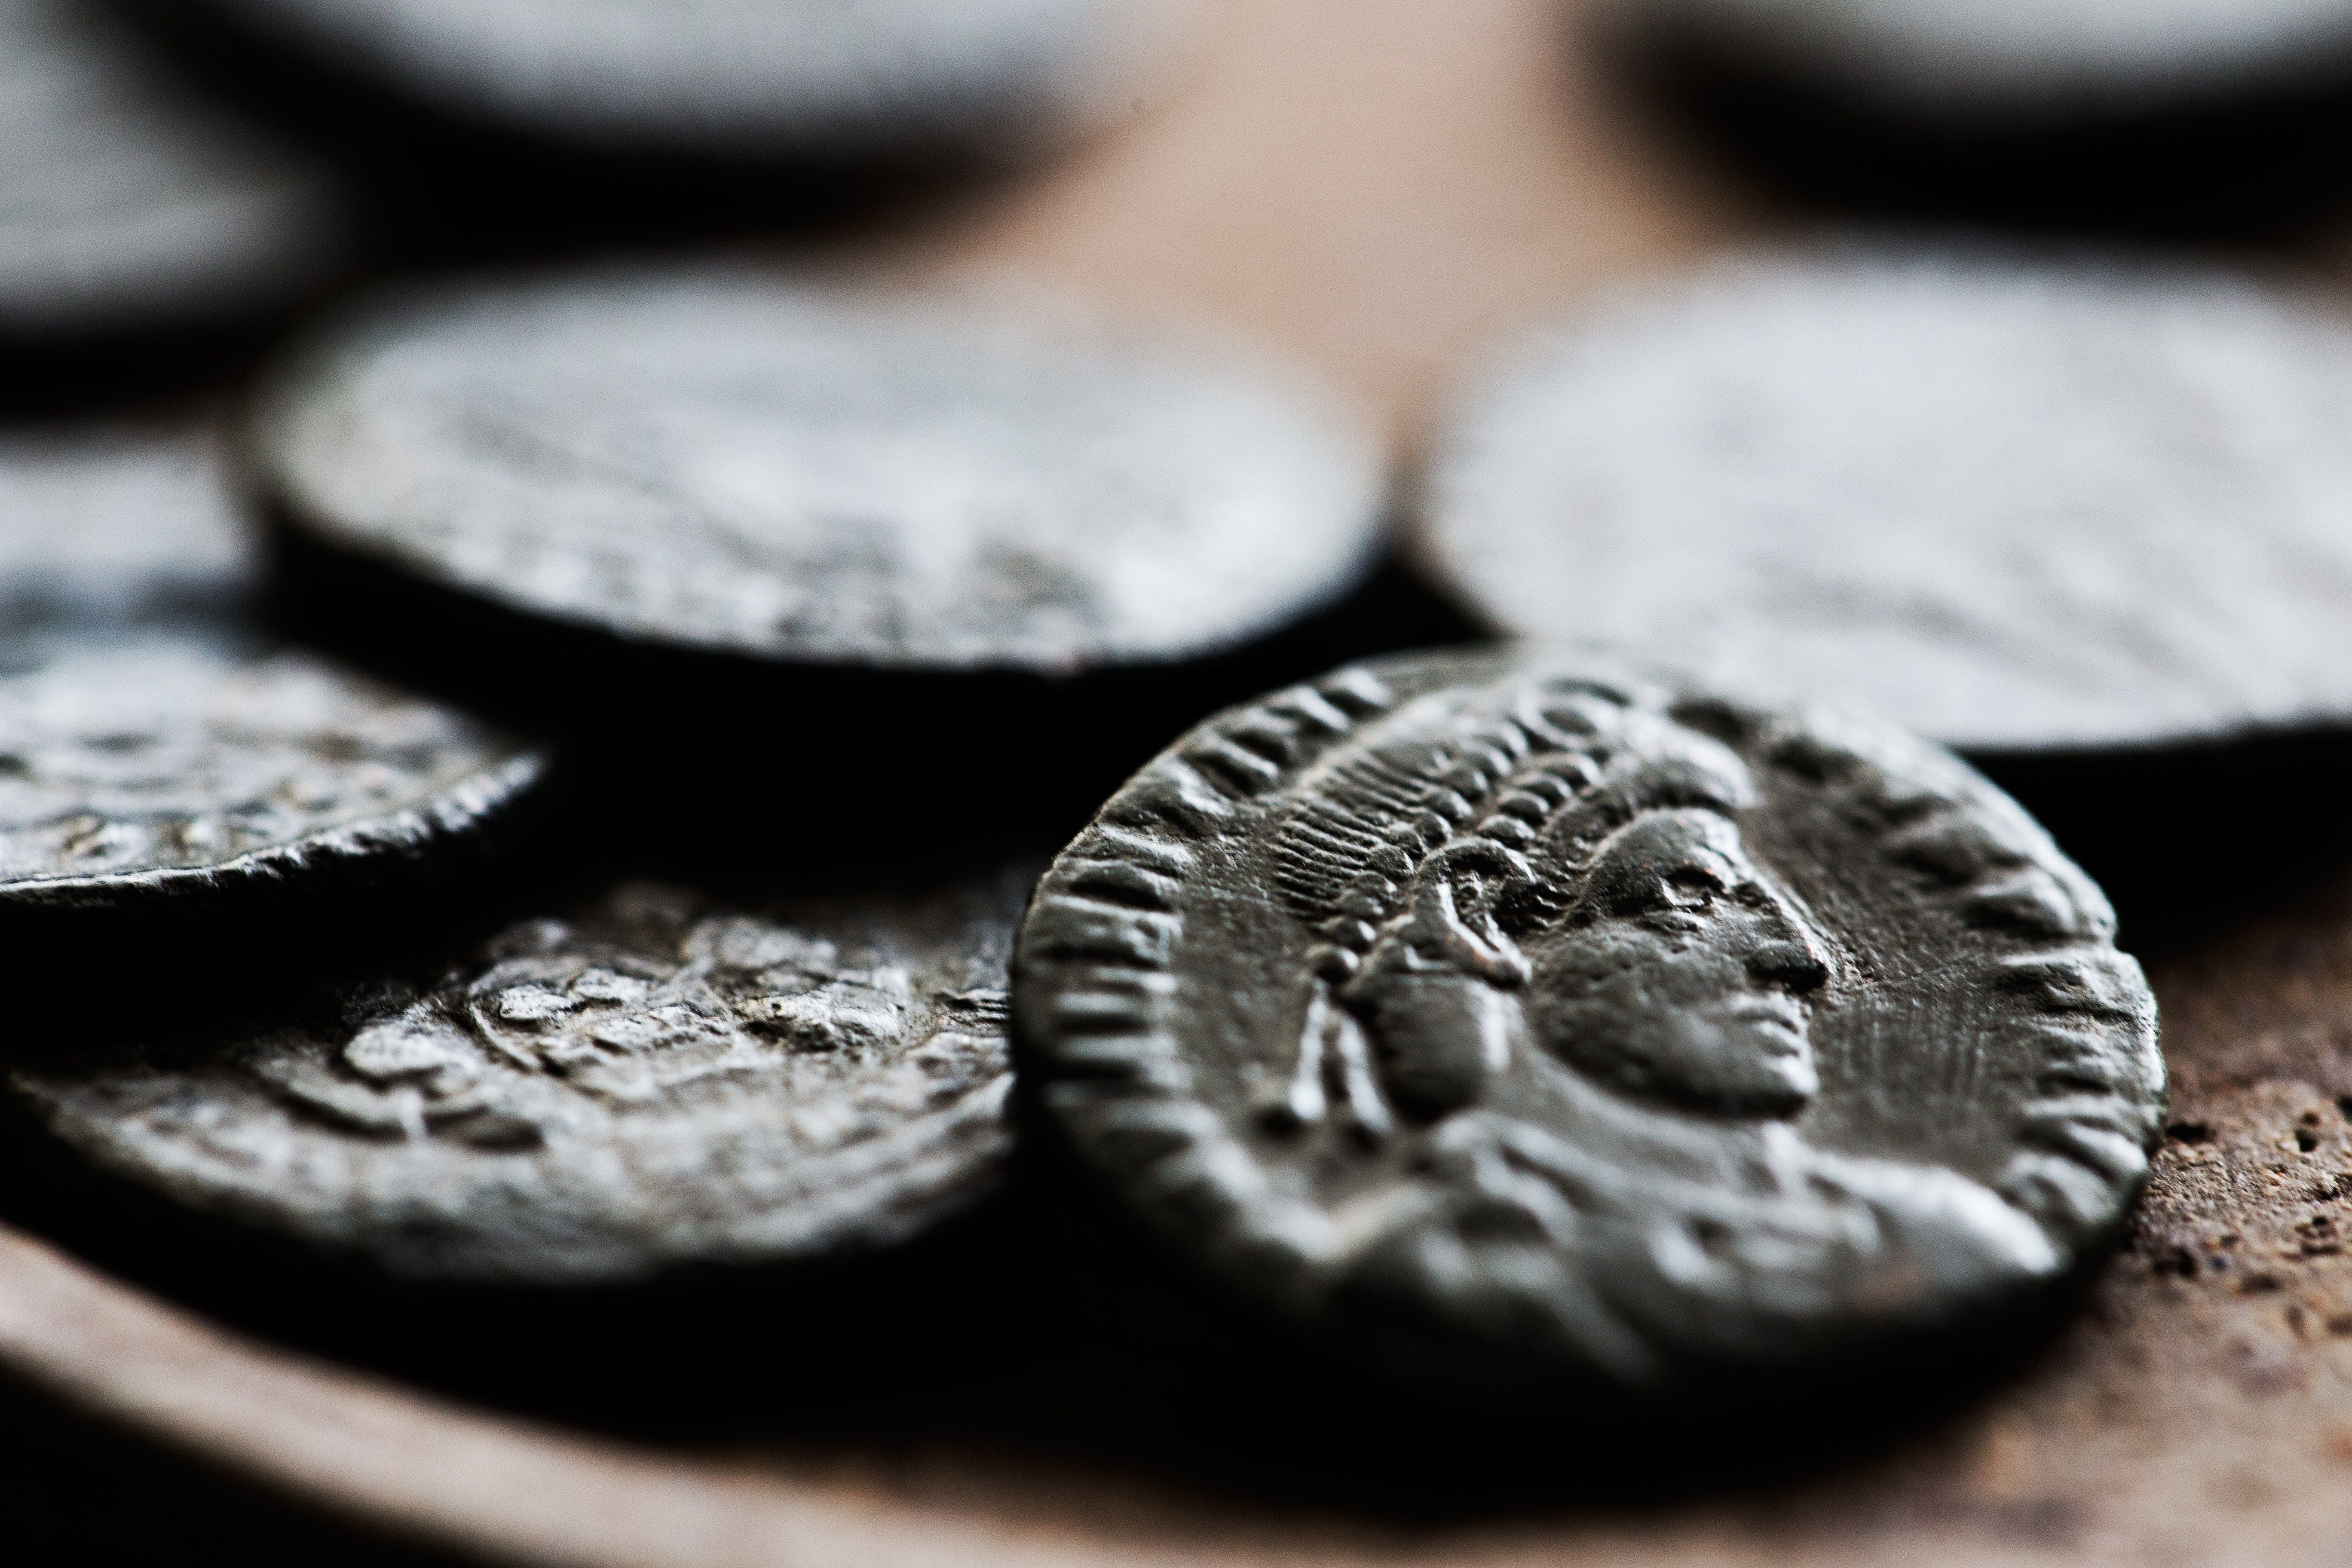 A close-up of some ancient coins.